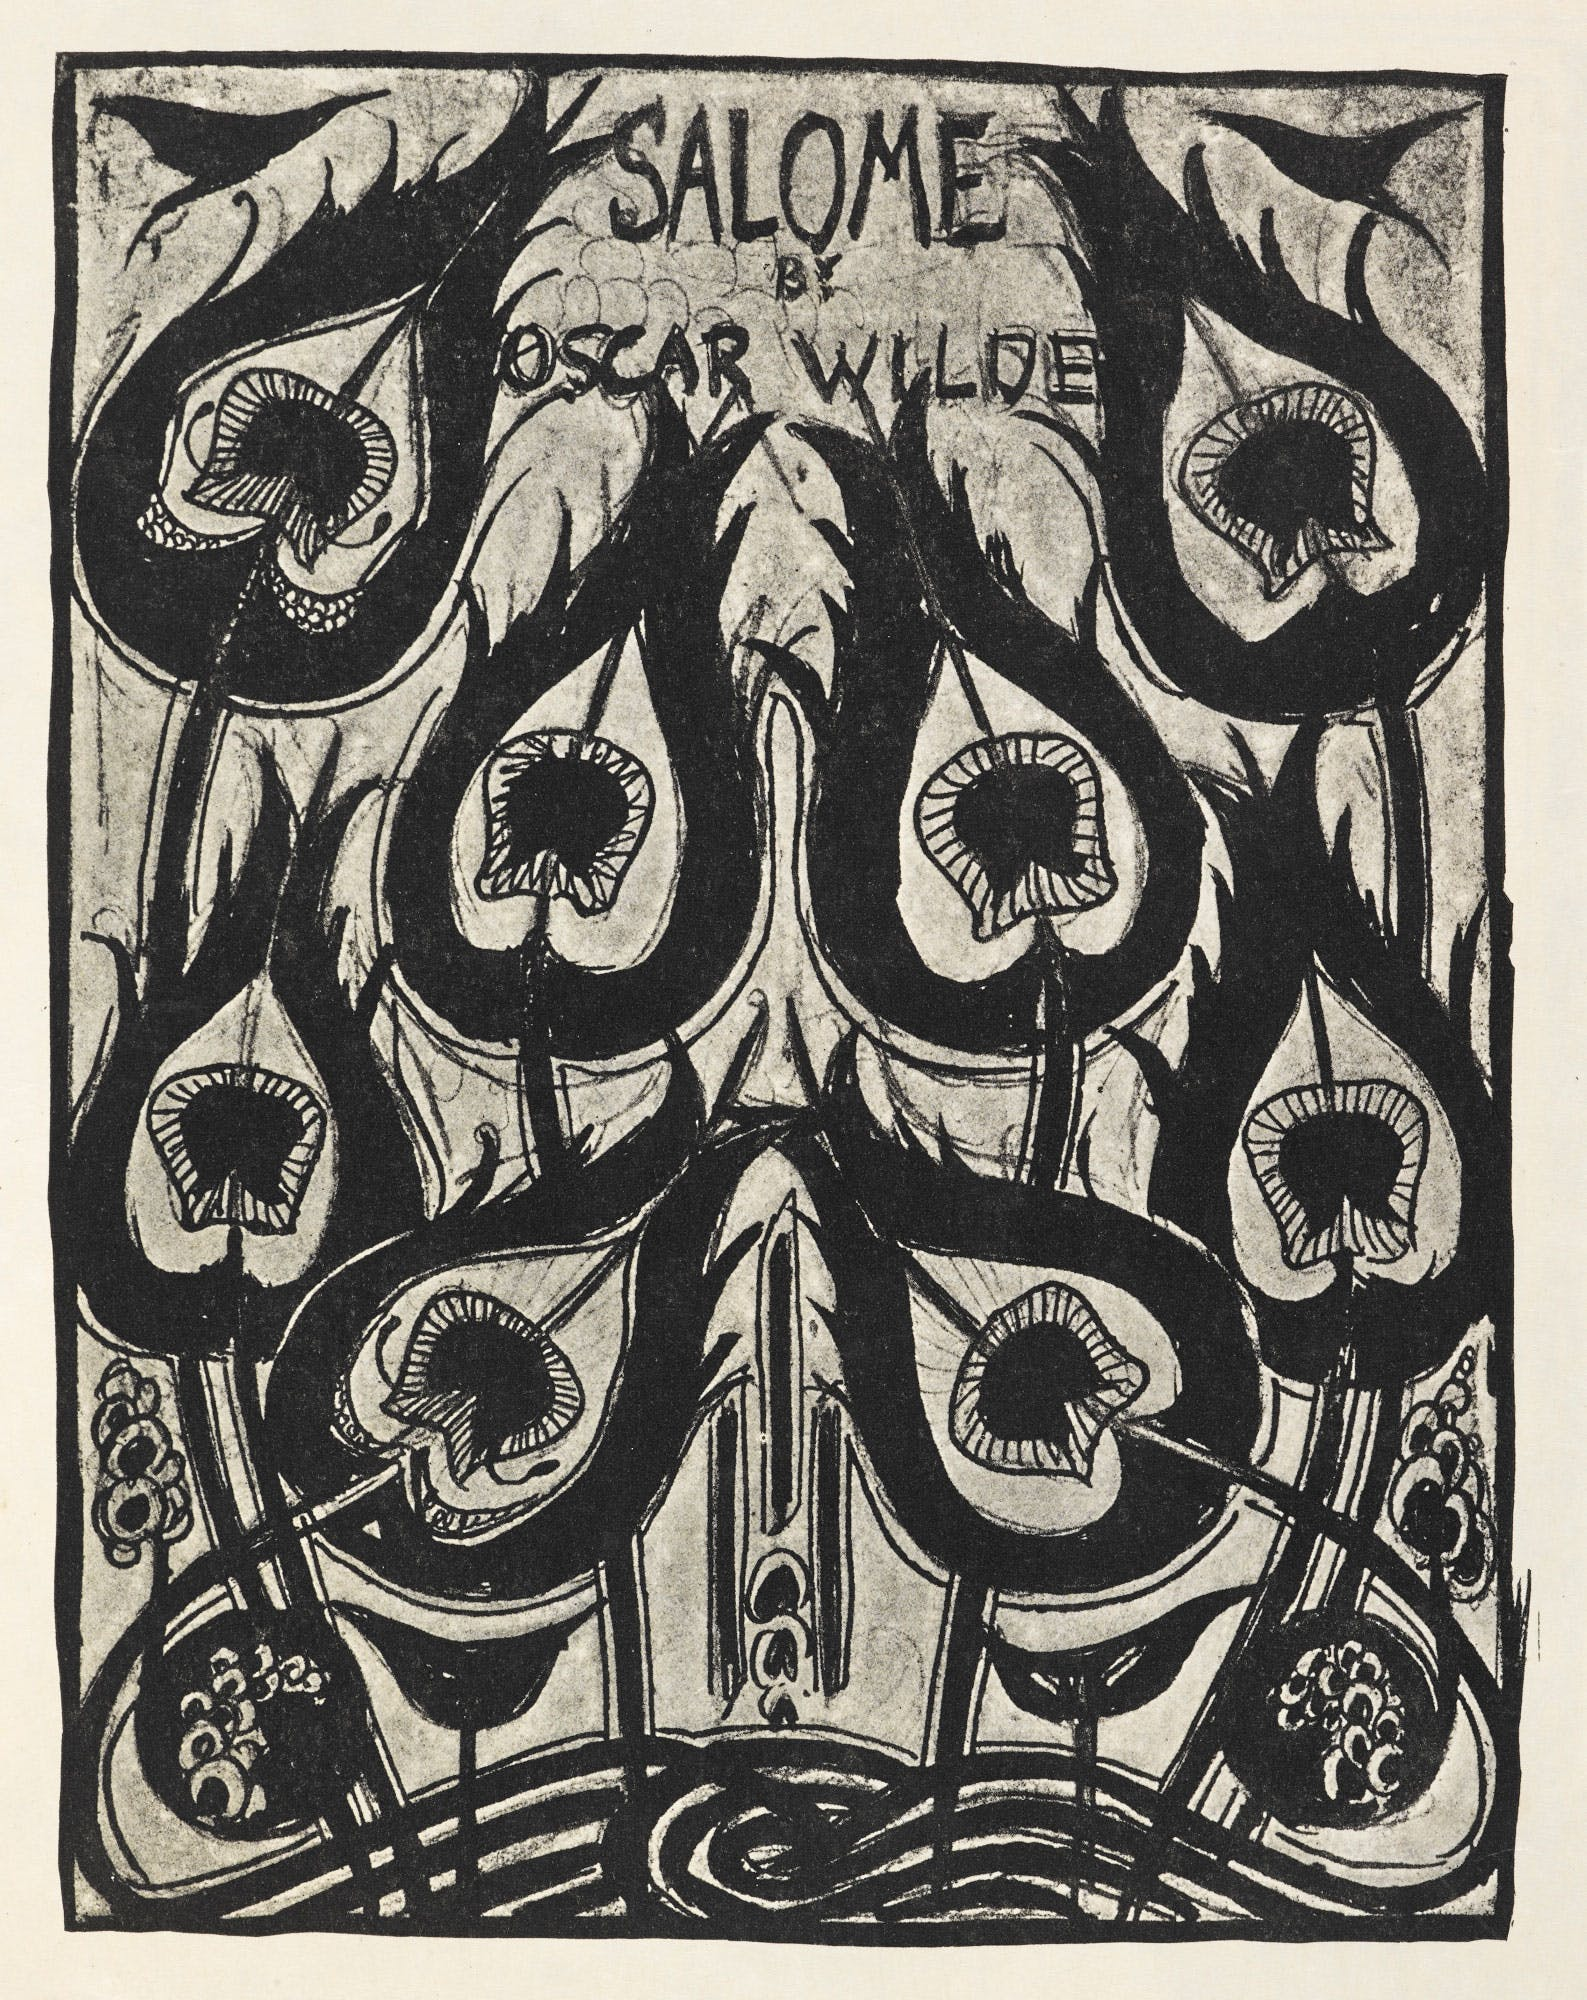 OSCAR WILDE'S PLAY SALOME ILLUSTRATED BY AUBREY BEARDSLEY IN A STRIKING MODERN AESTHETIC (1894)